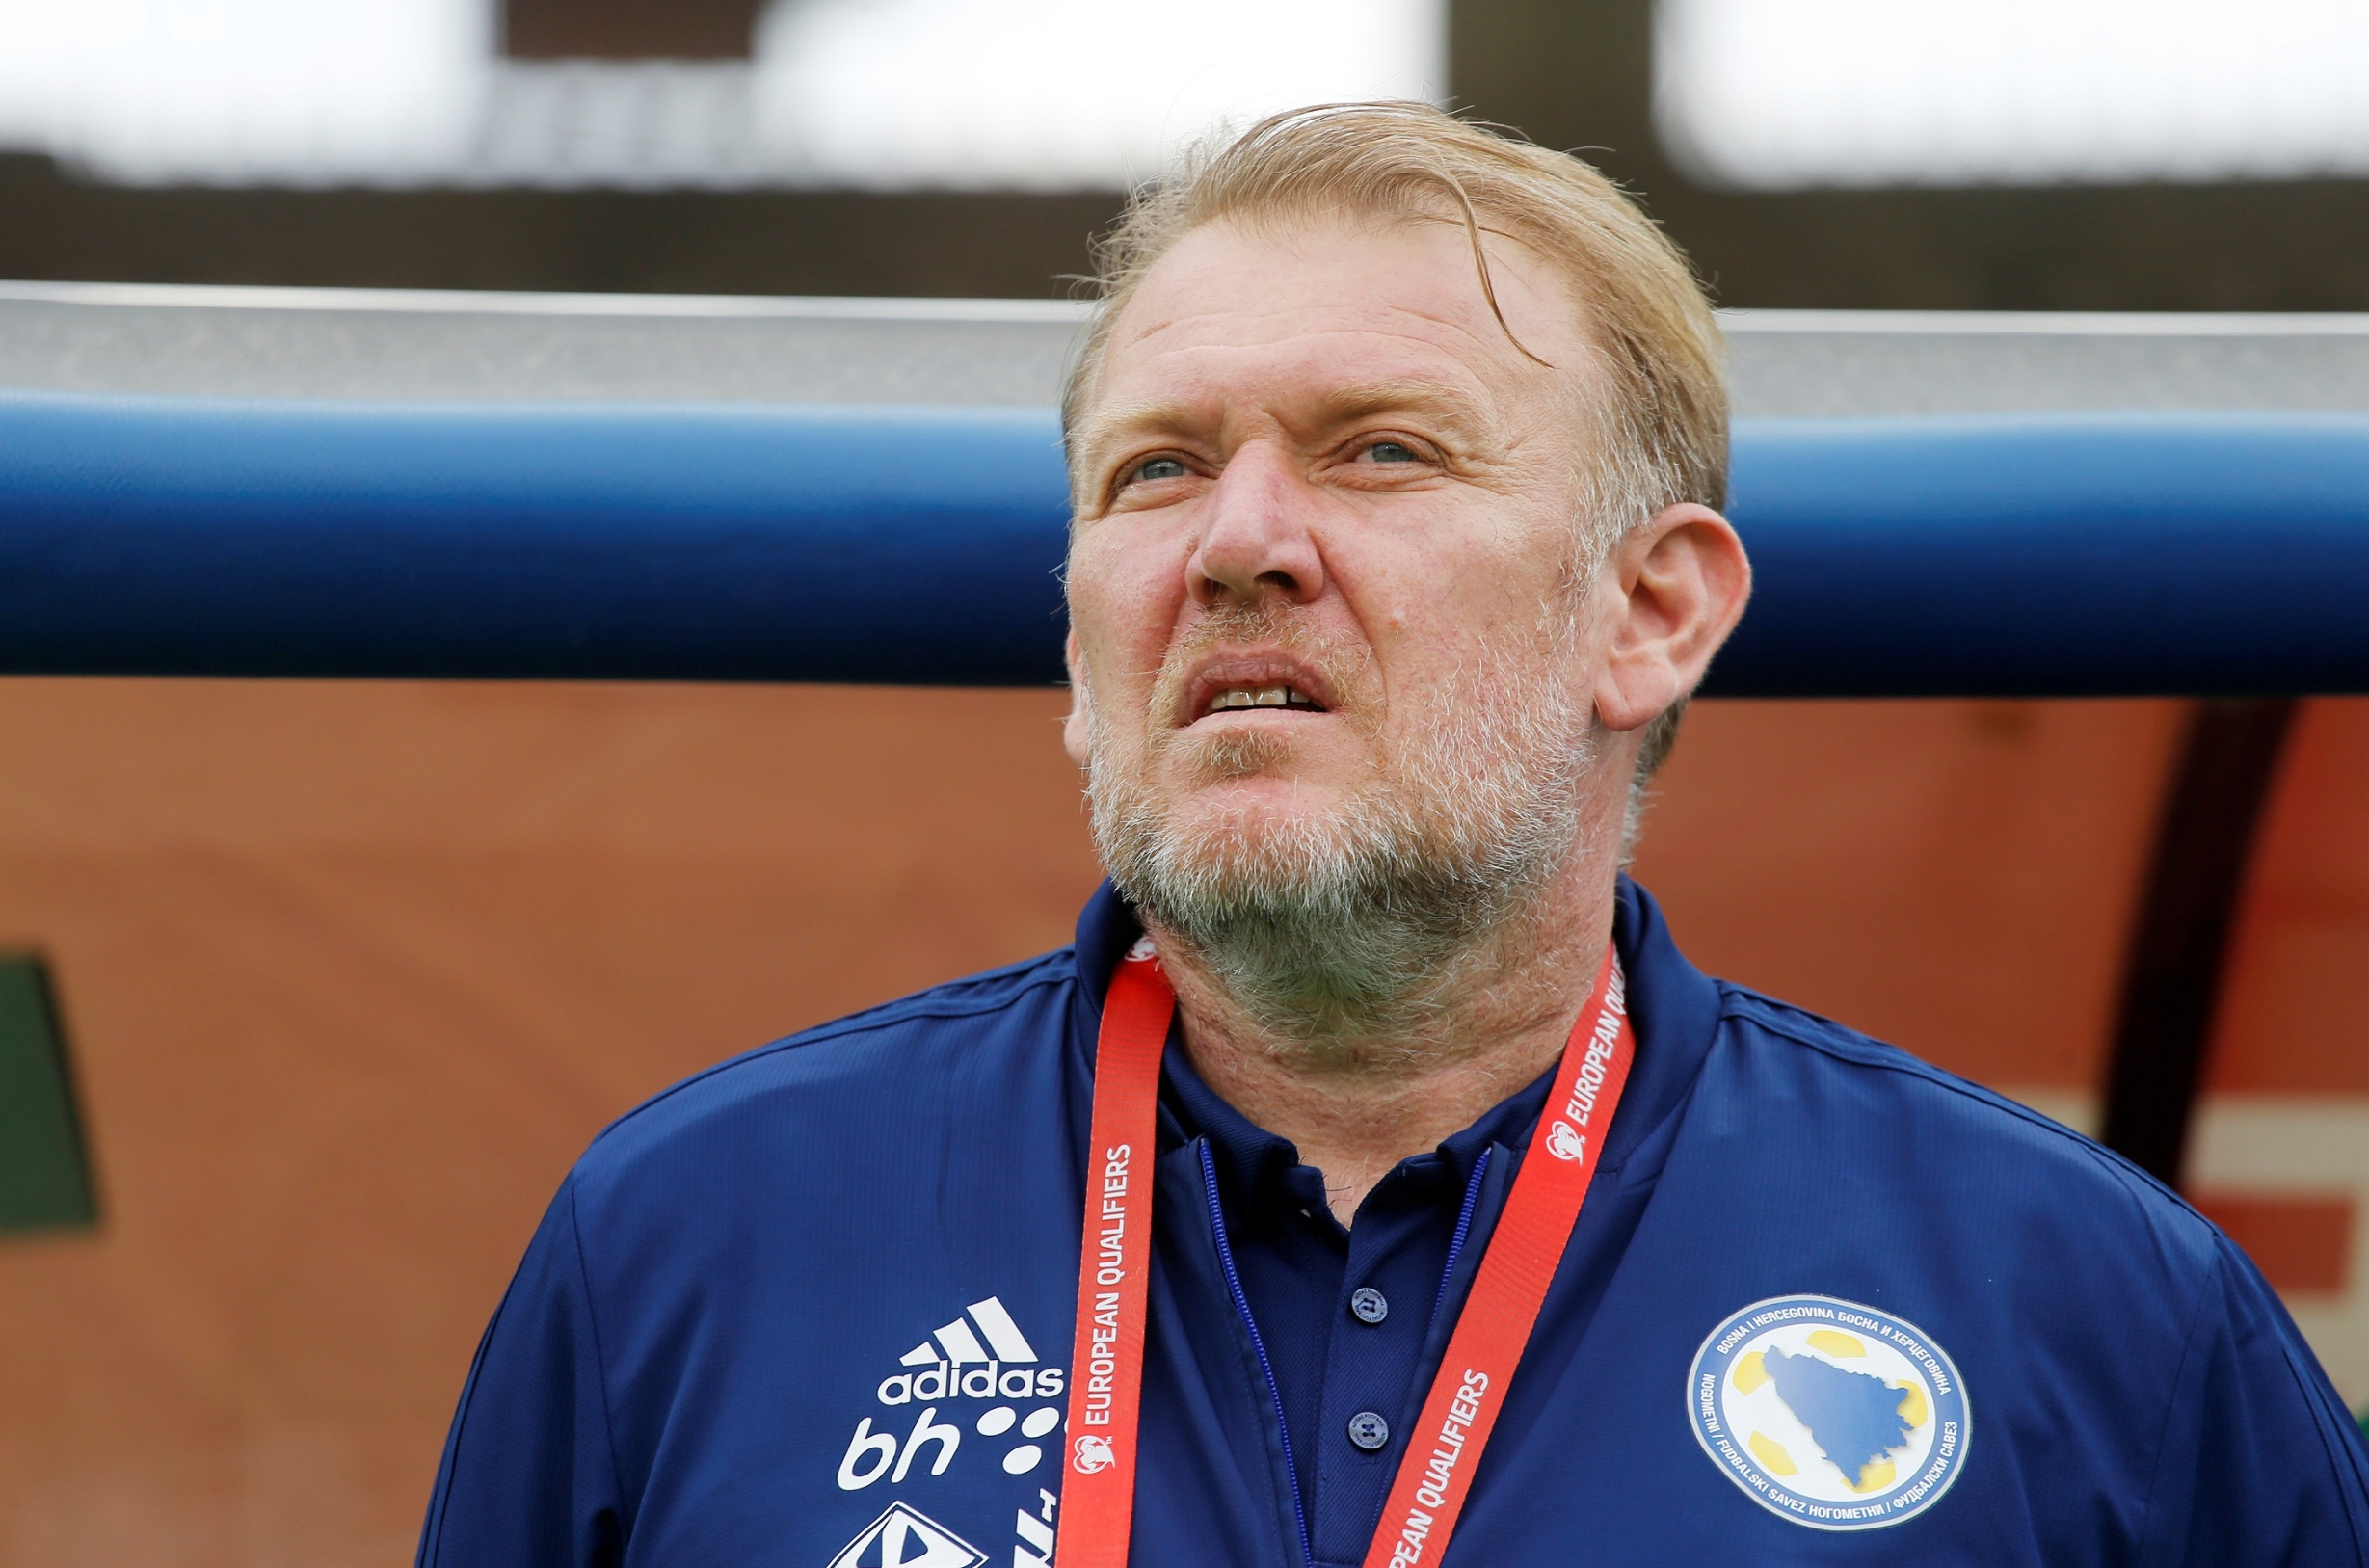 Soccer Football - Euro 2020 Qualifier - Group J - Armenia v Bosnia and Herzegovina - Vazgen Sargsyan Republican Stadium, Yerevan, Armenia - September 8, 2019  Bosnia and Herzegovina coach Robert Prosinecki   REUTERS/Anton Vaganov - RC1EE48BD850